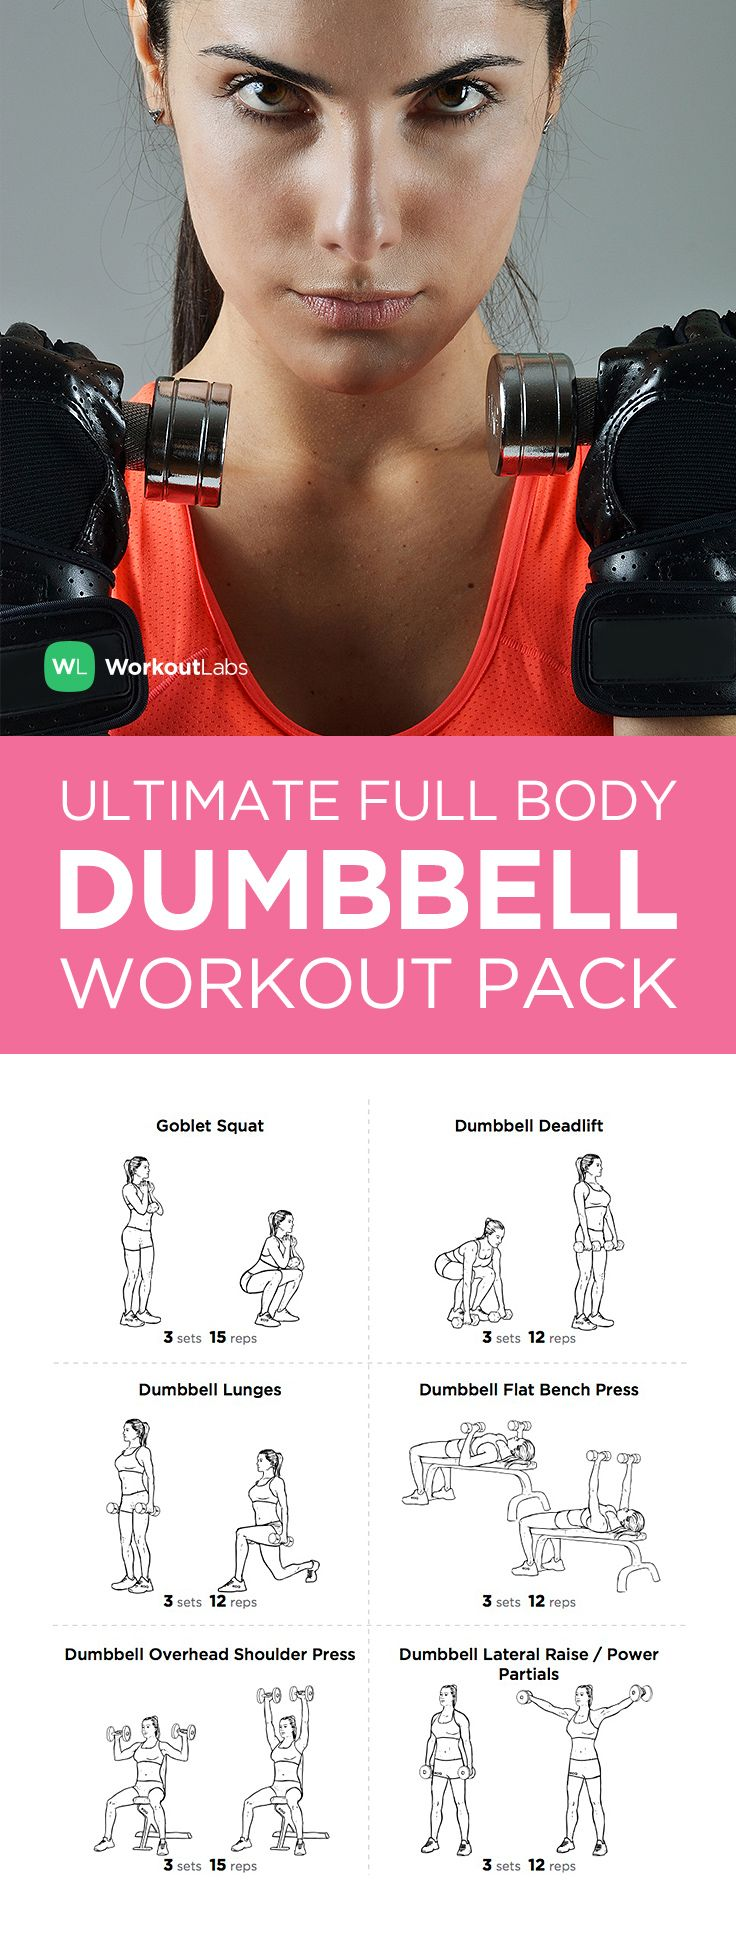 Full Body Dumbbell Workout Routine At Home Pdf | Kayaworkout co